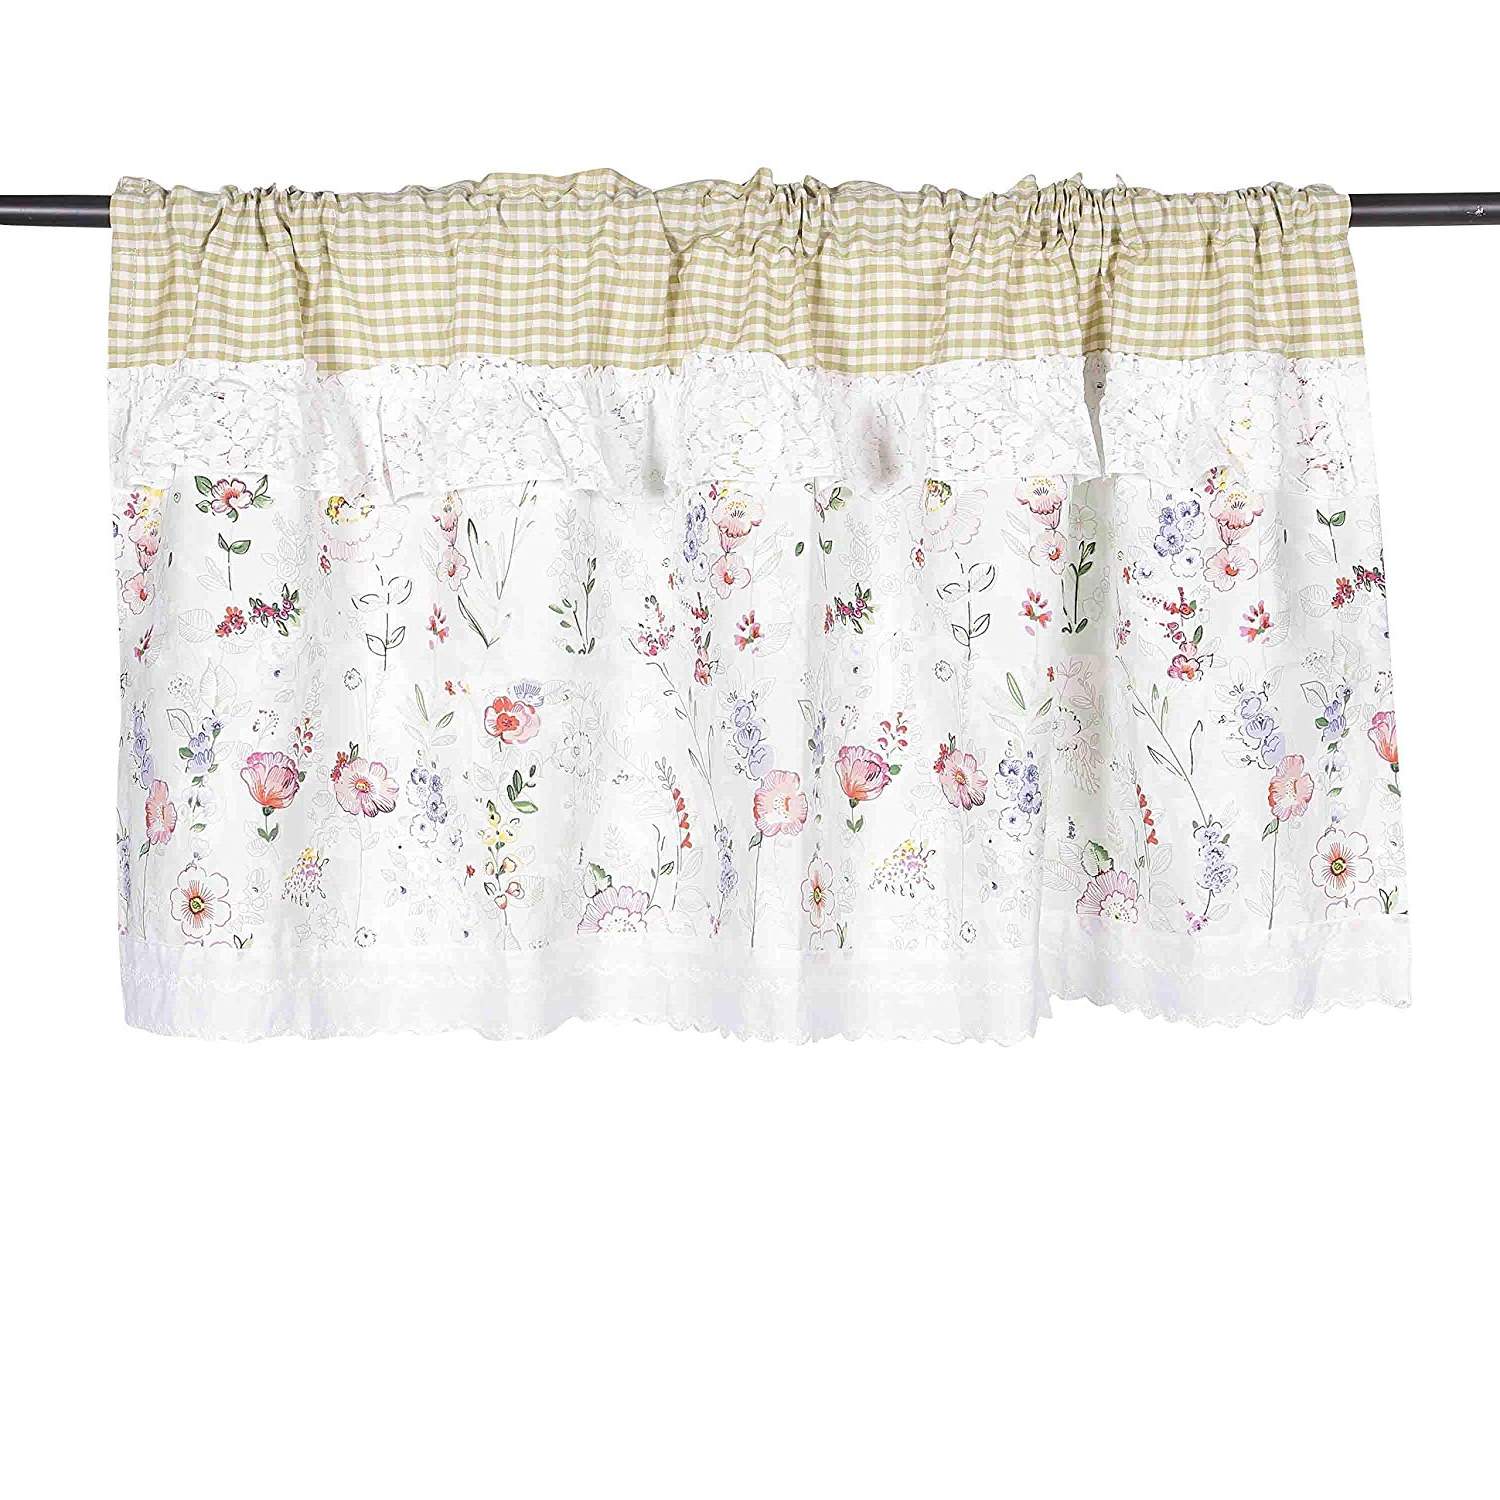 Famous Touch Of Spring 24 Inch Tier Pairs For Rosa Multiflora Ruffles Lace Printed Window Curtain Valance Tier Pair  Curtain Sheer Green Checked 55X24 Inch (View 2 of 20)